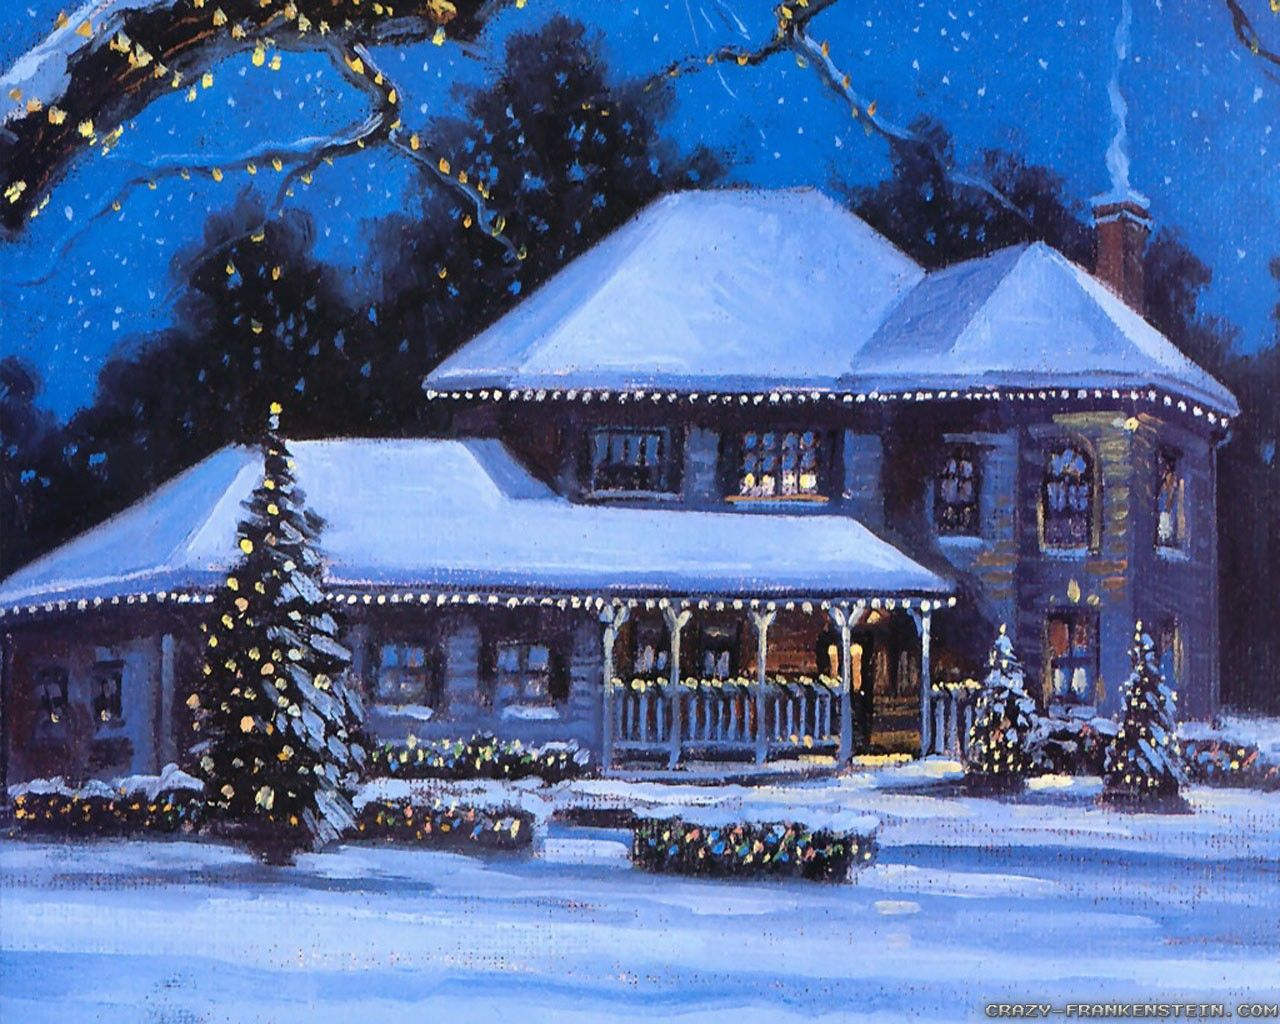 House Winter Christmas Scenery Painting Wallpapers Christmas Scenery Winter Wallpaper Christmas Landscape